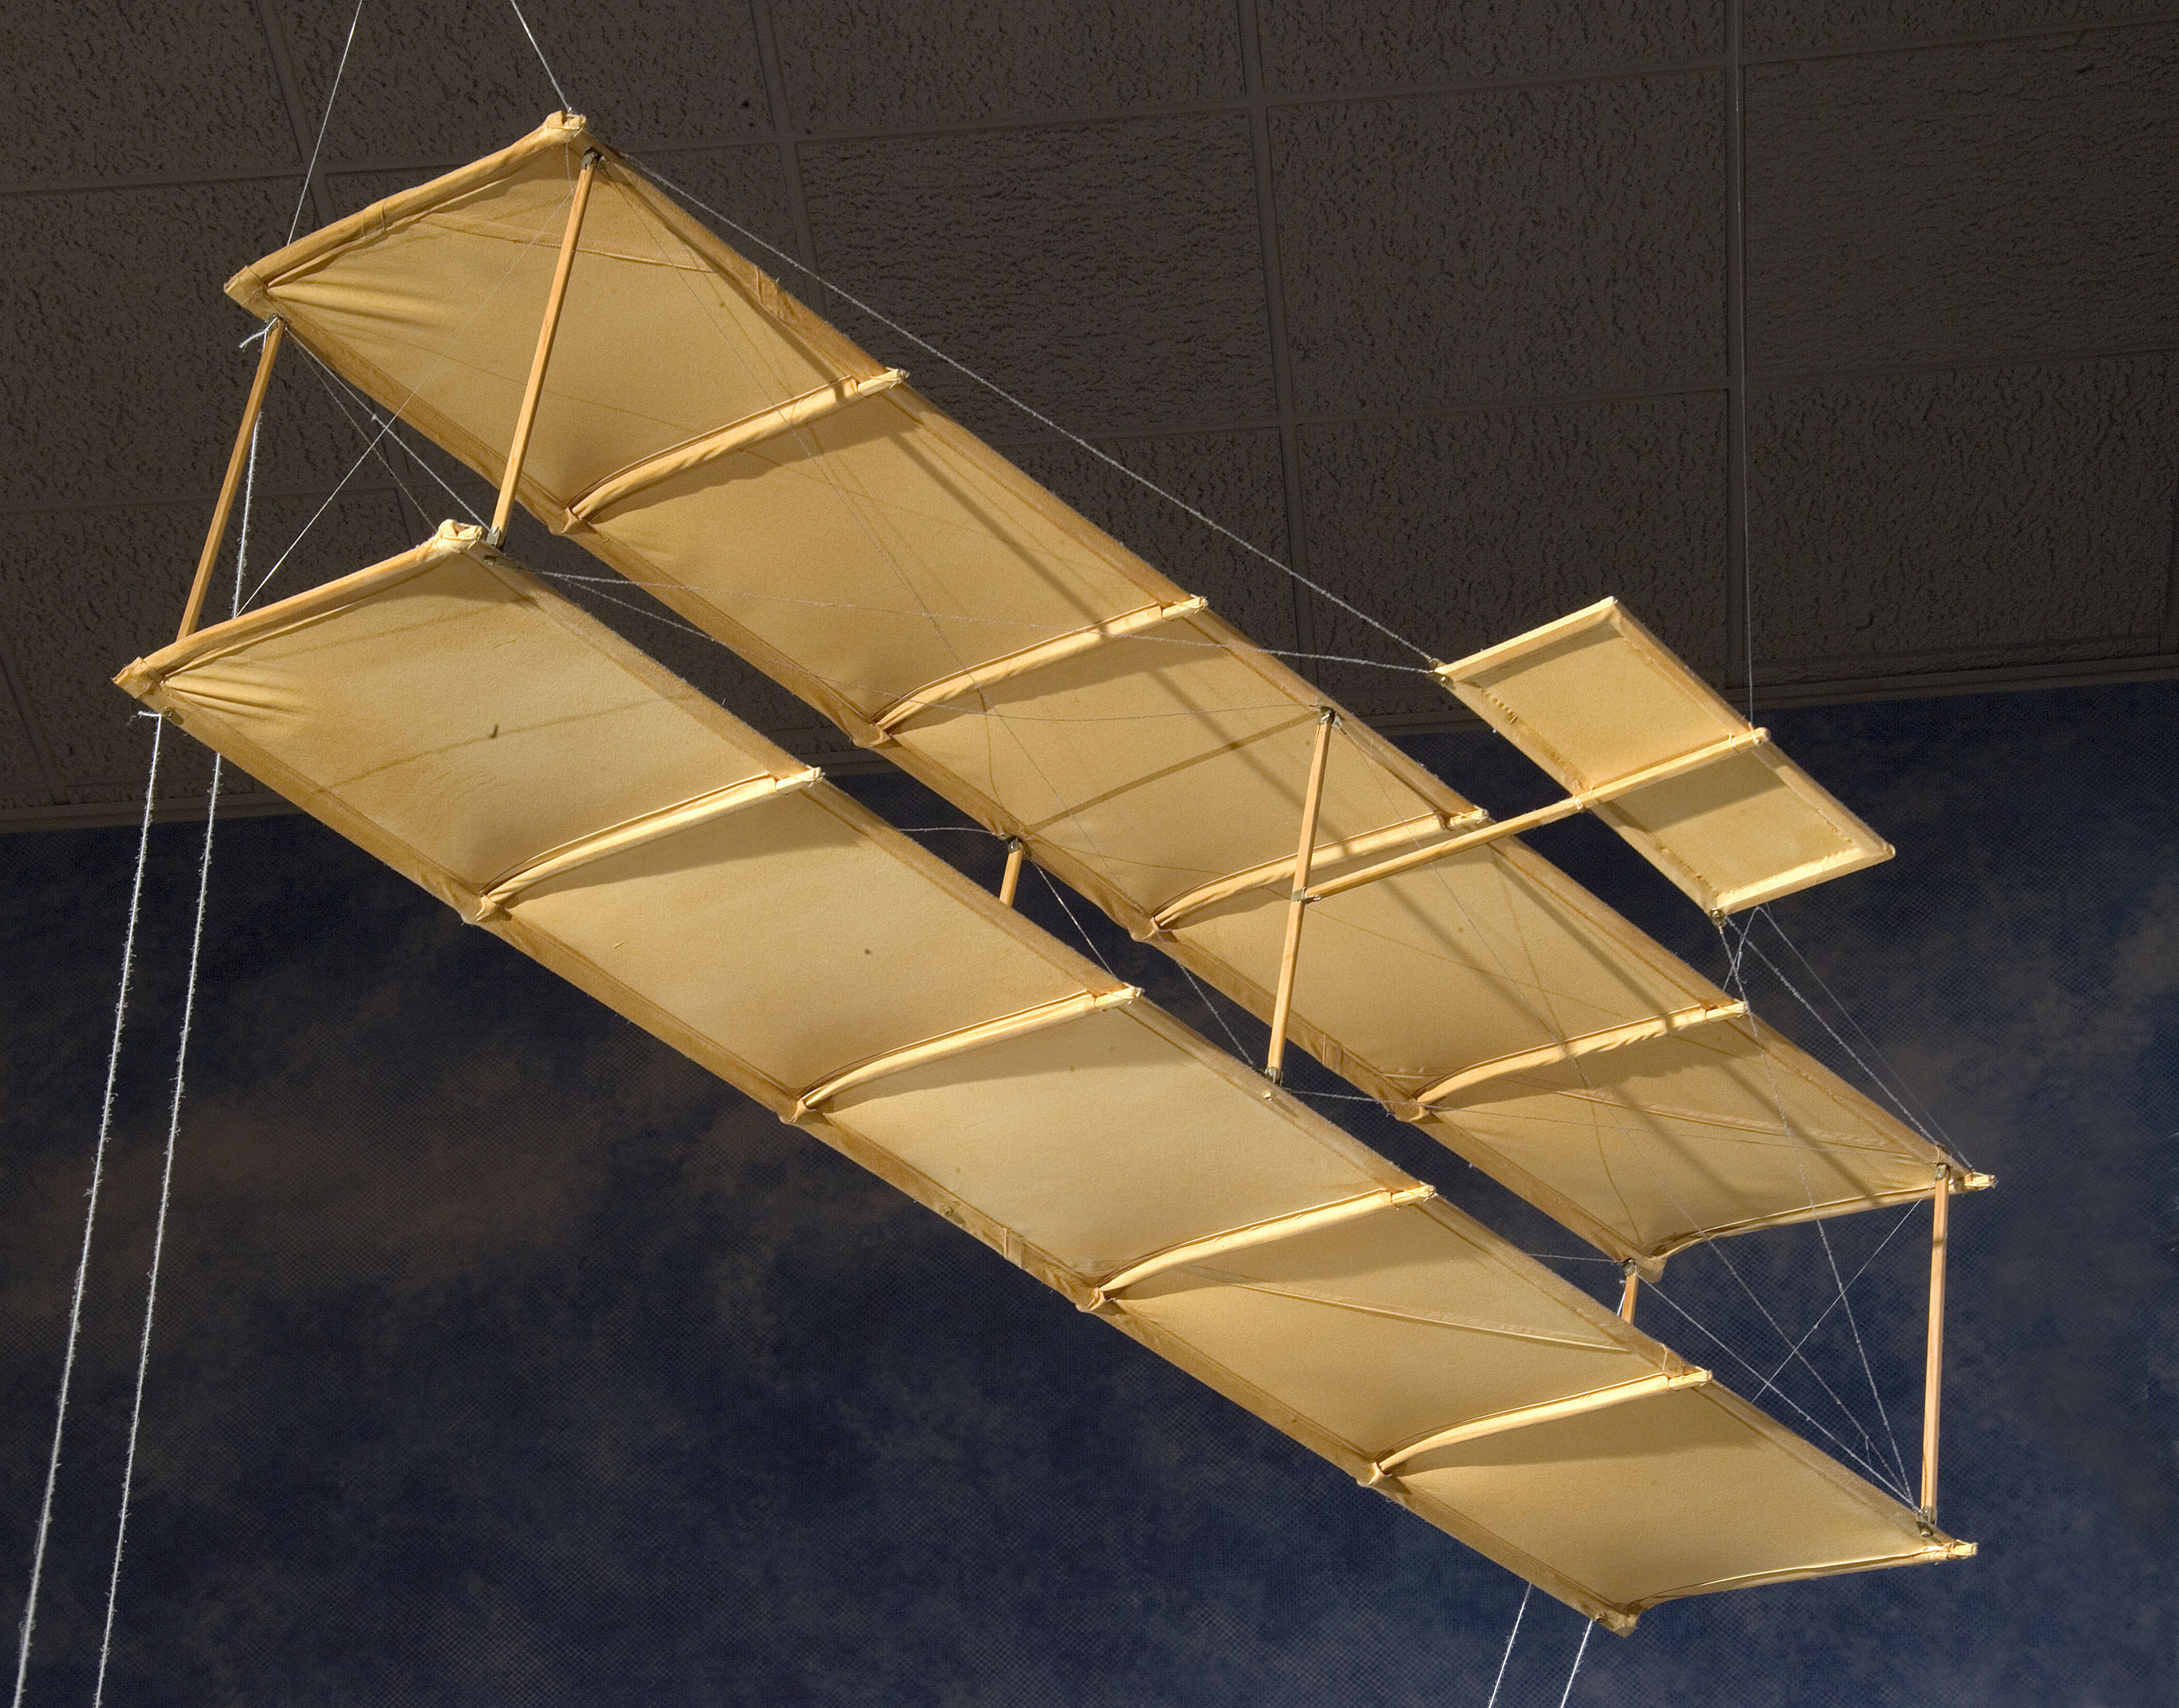 1899 Wright Kite (reproduction)